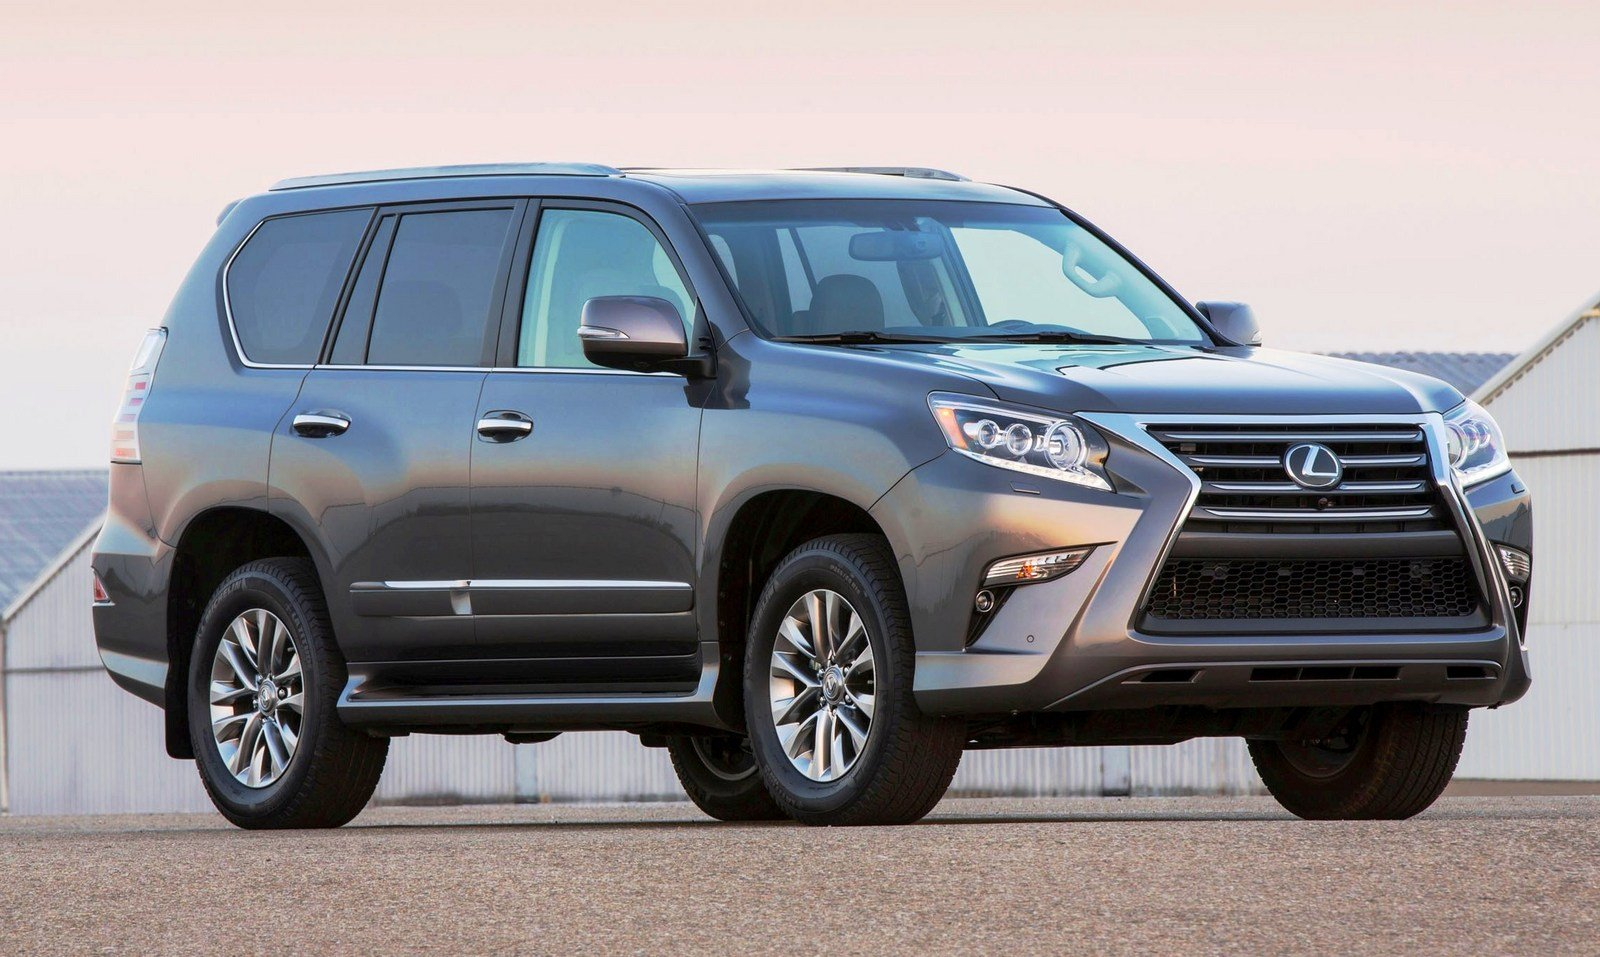 2014 lexus gx 460 picture 519923 car review top speed. Black Bedroom Furniture Sets. Home Design Ideas